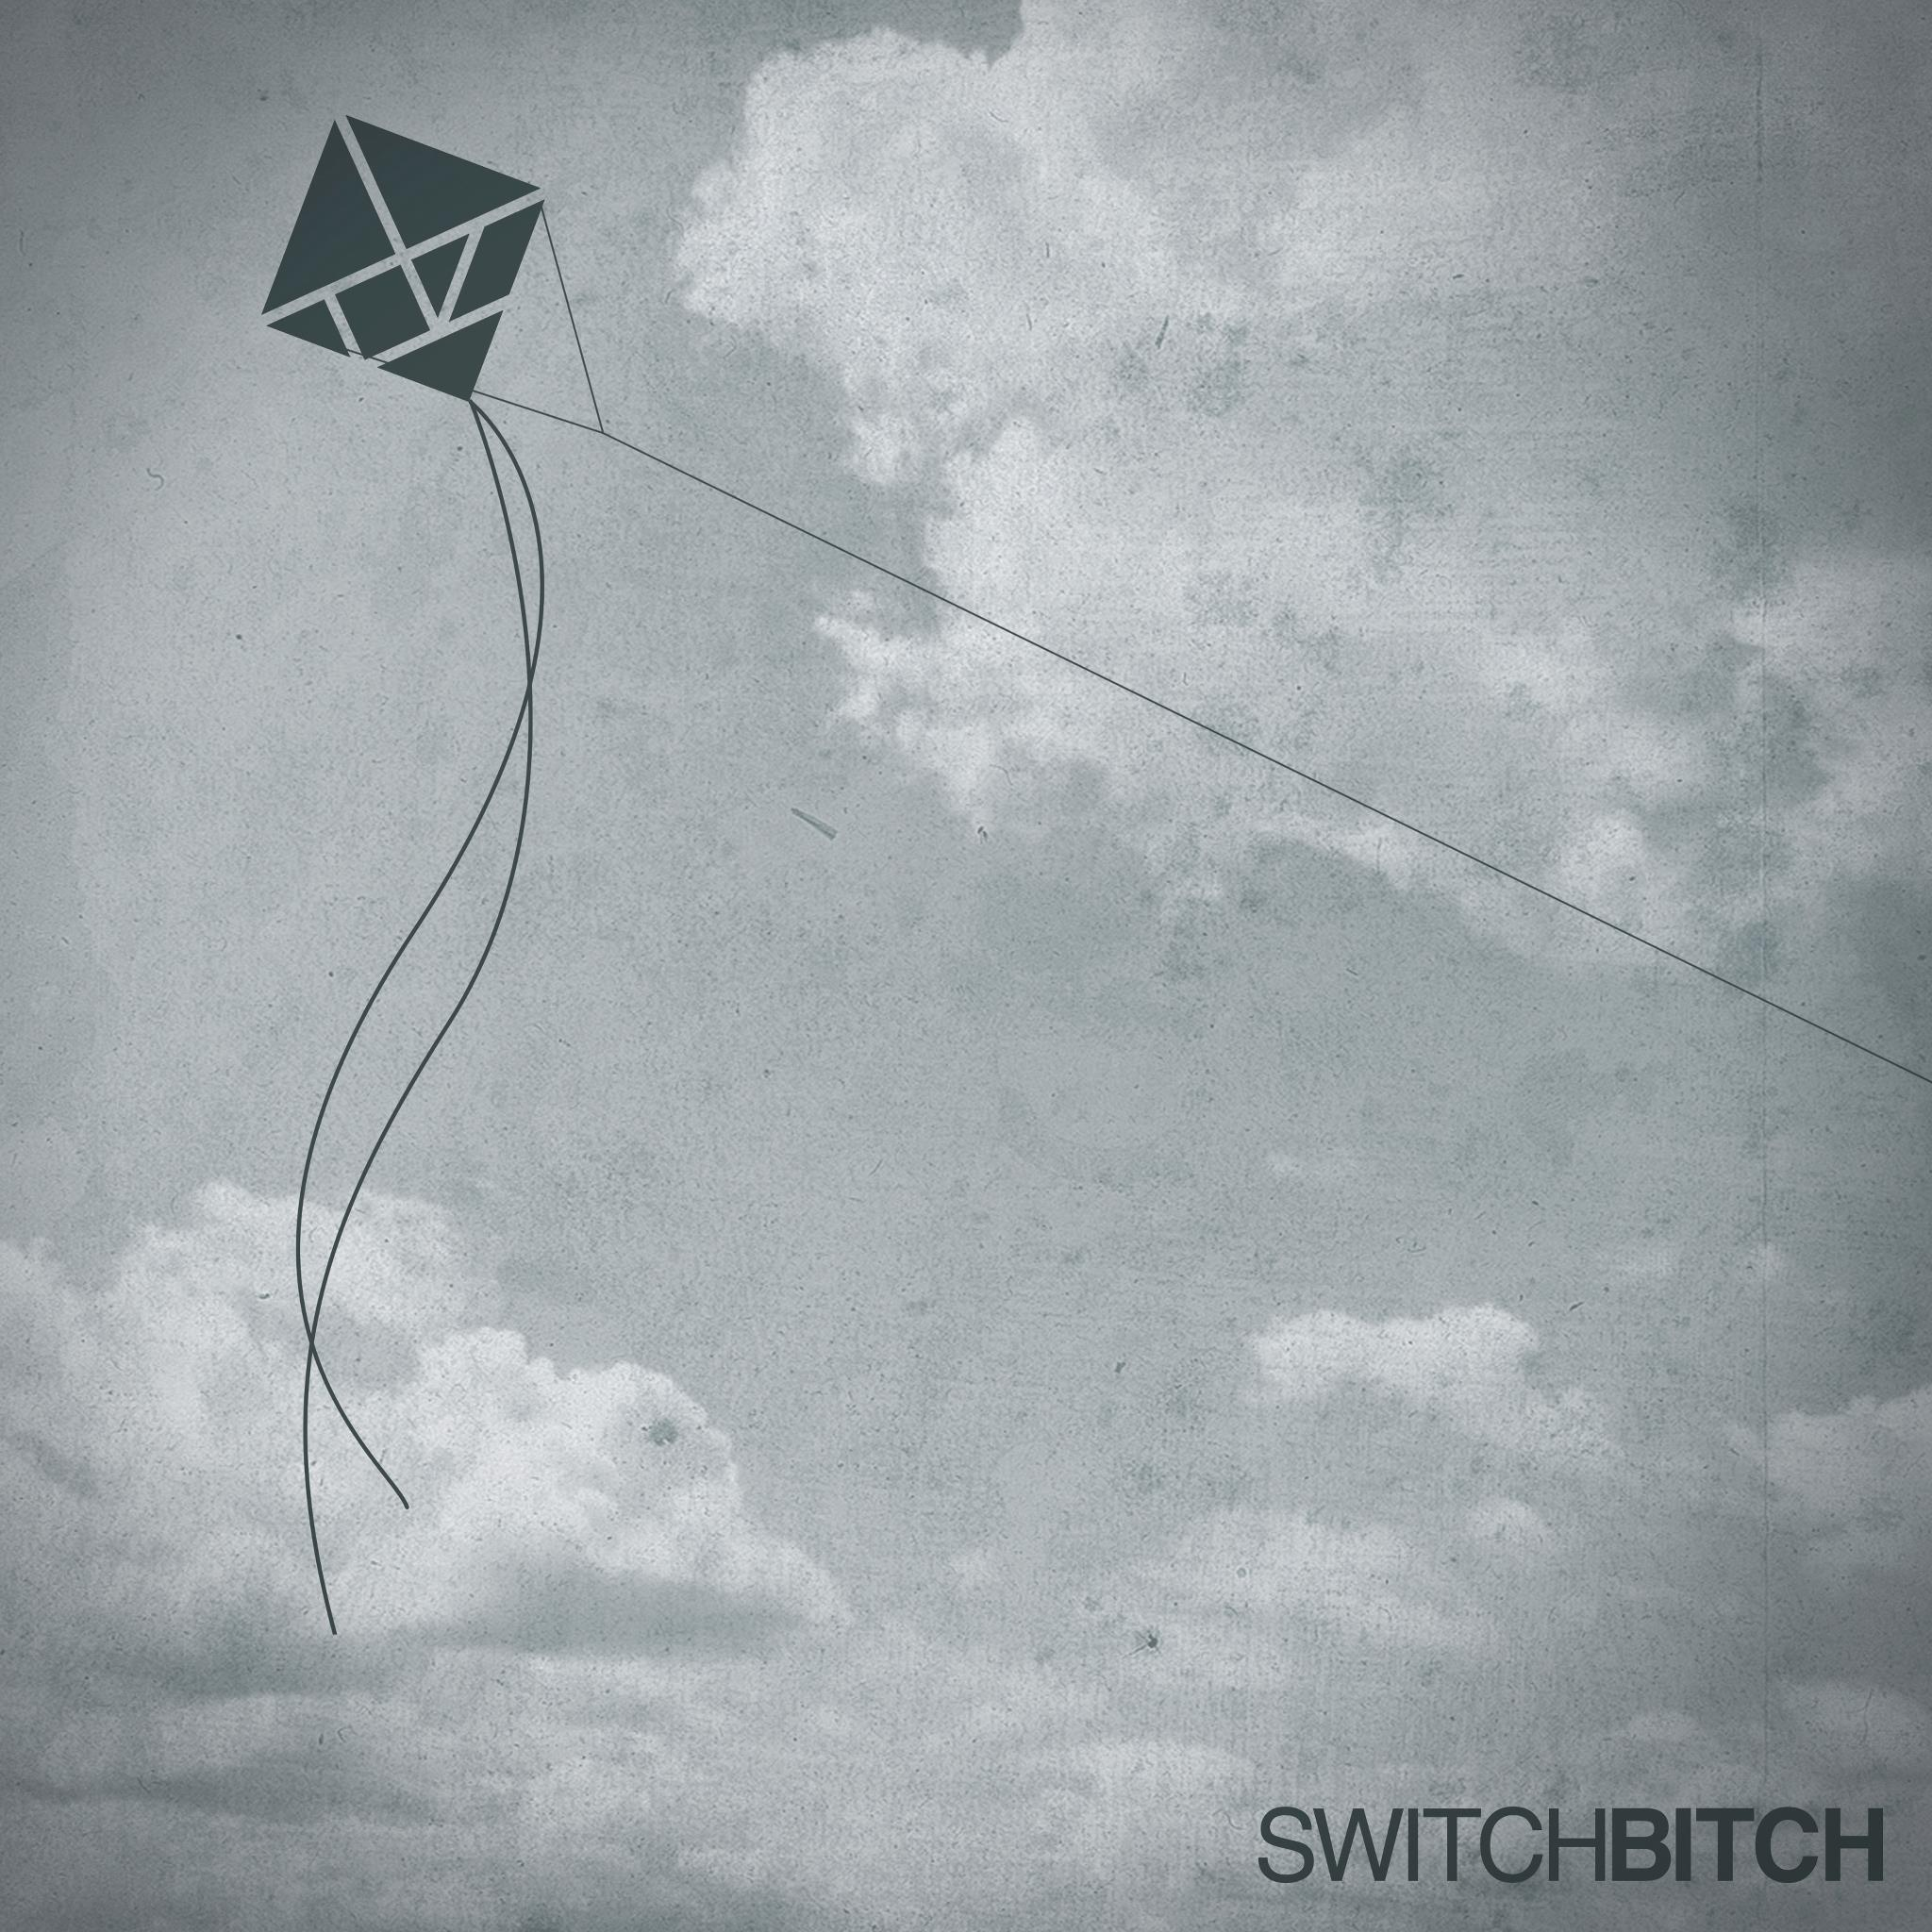 Switch Bitch